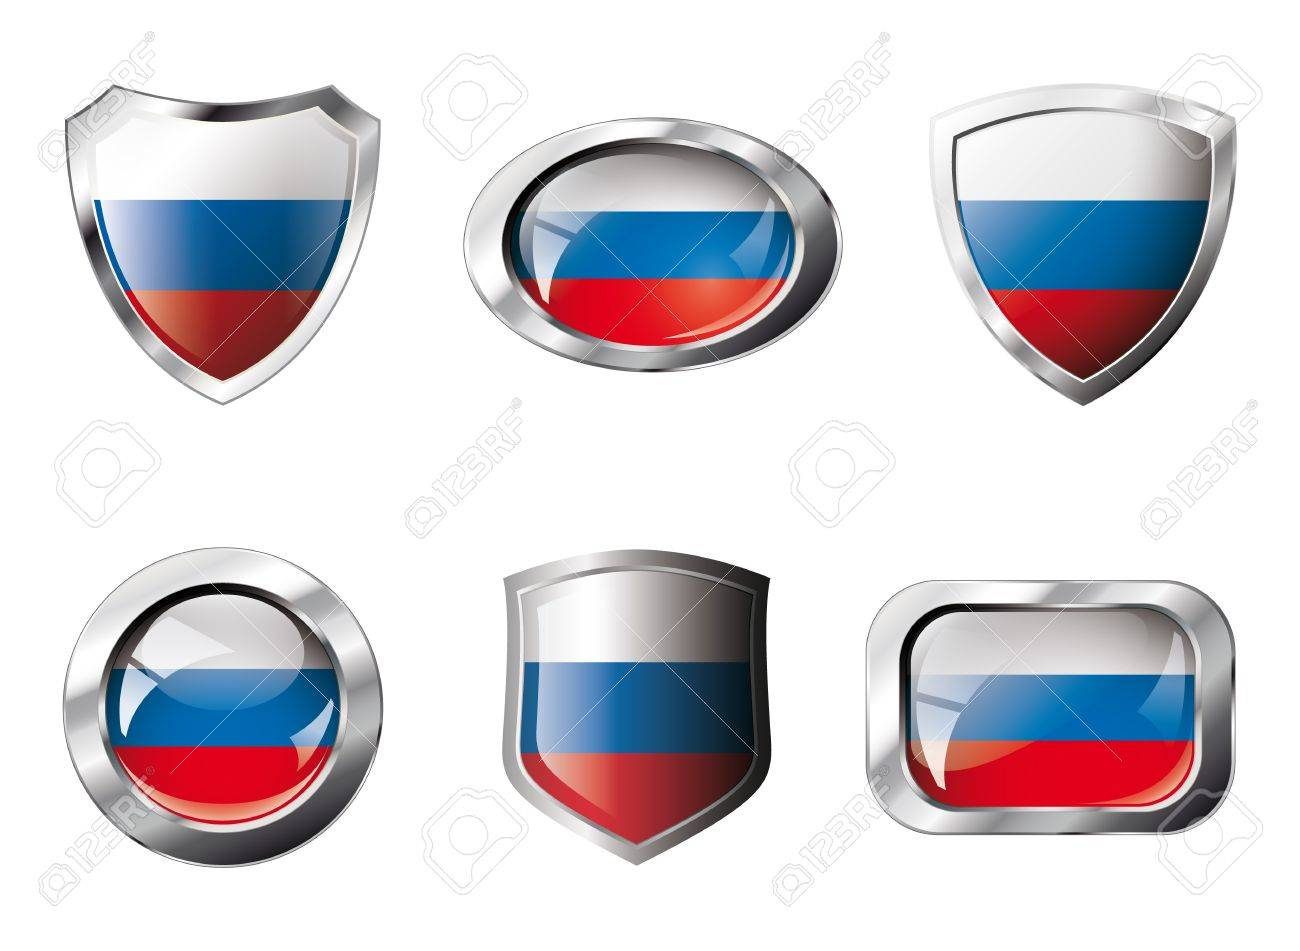 Russia set shiny buttons and shields of flag with metal frame . Isolated abstract object against white background. Stock Photo - 8787324